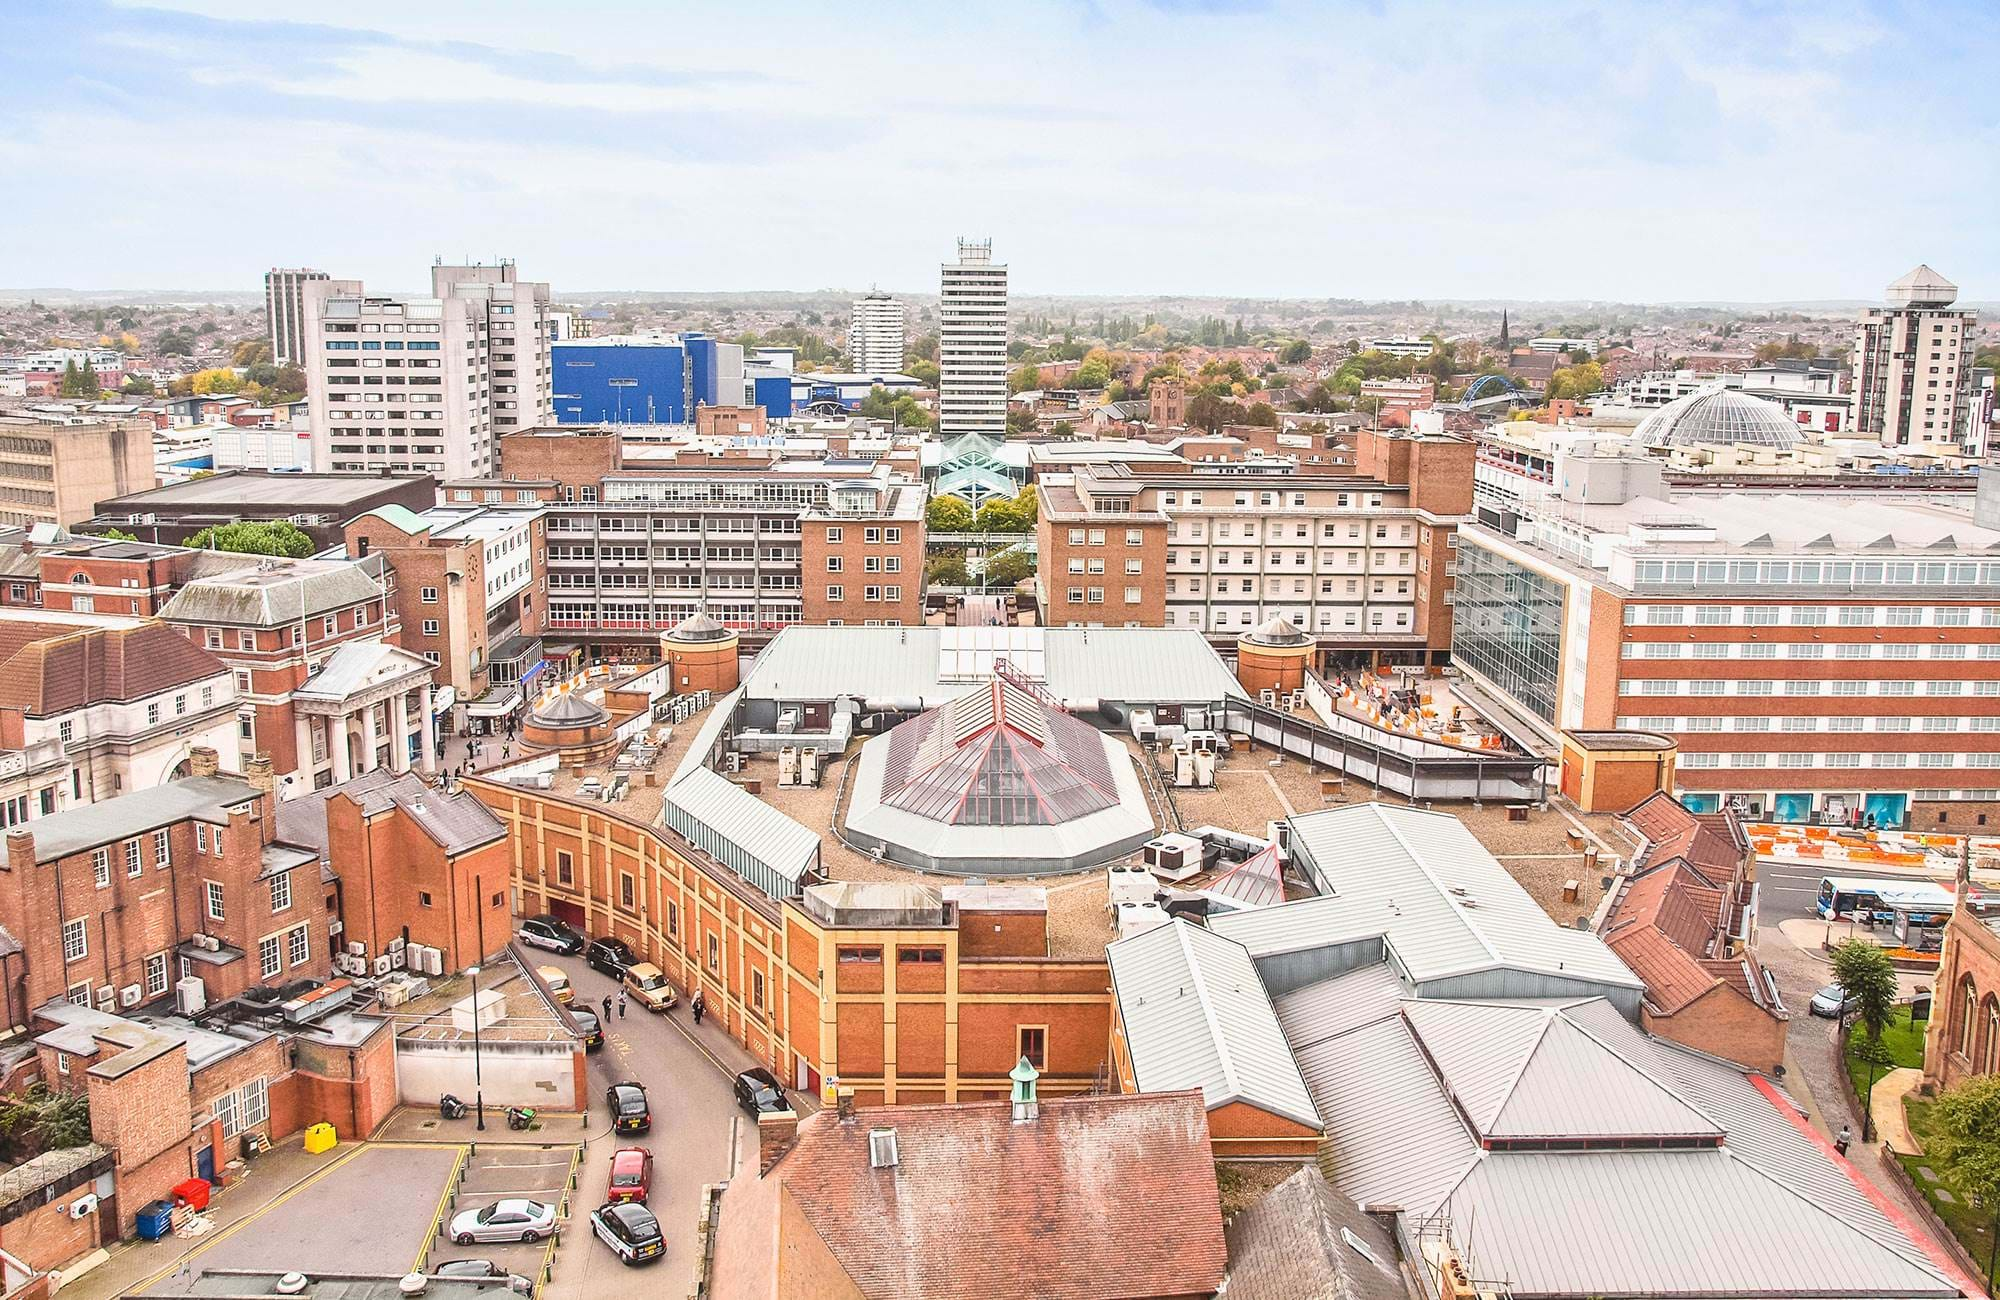 Panoramic-view-of-coventry,-England-UK